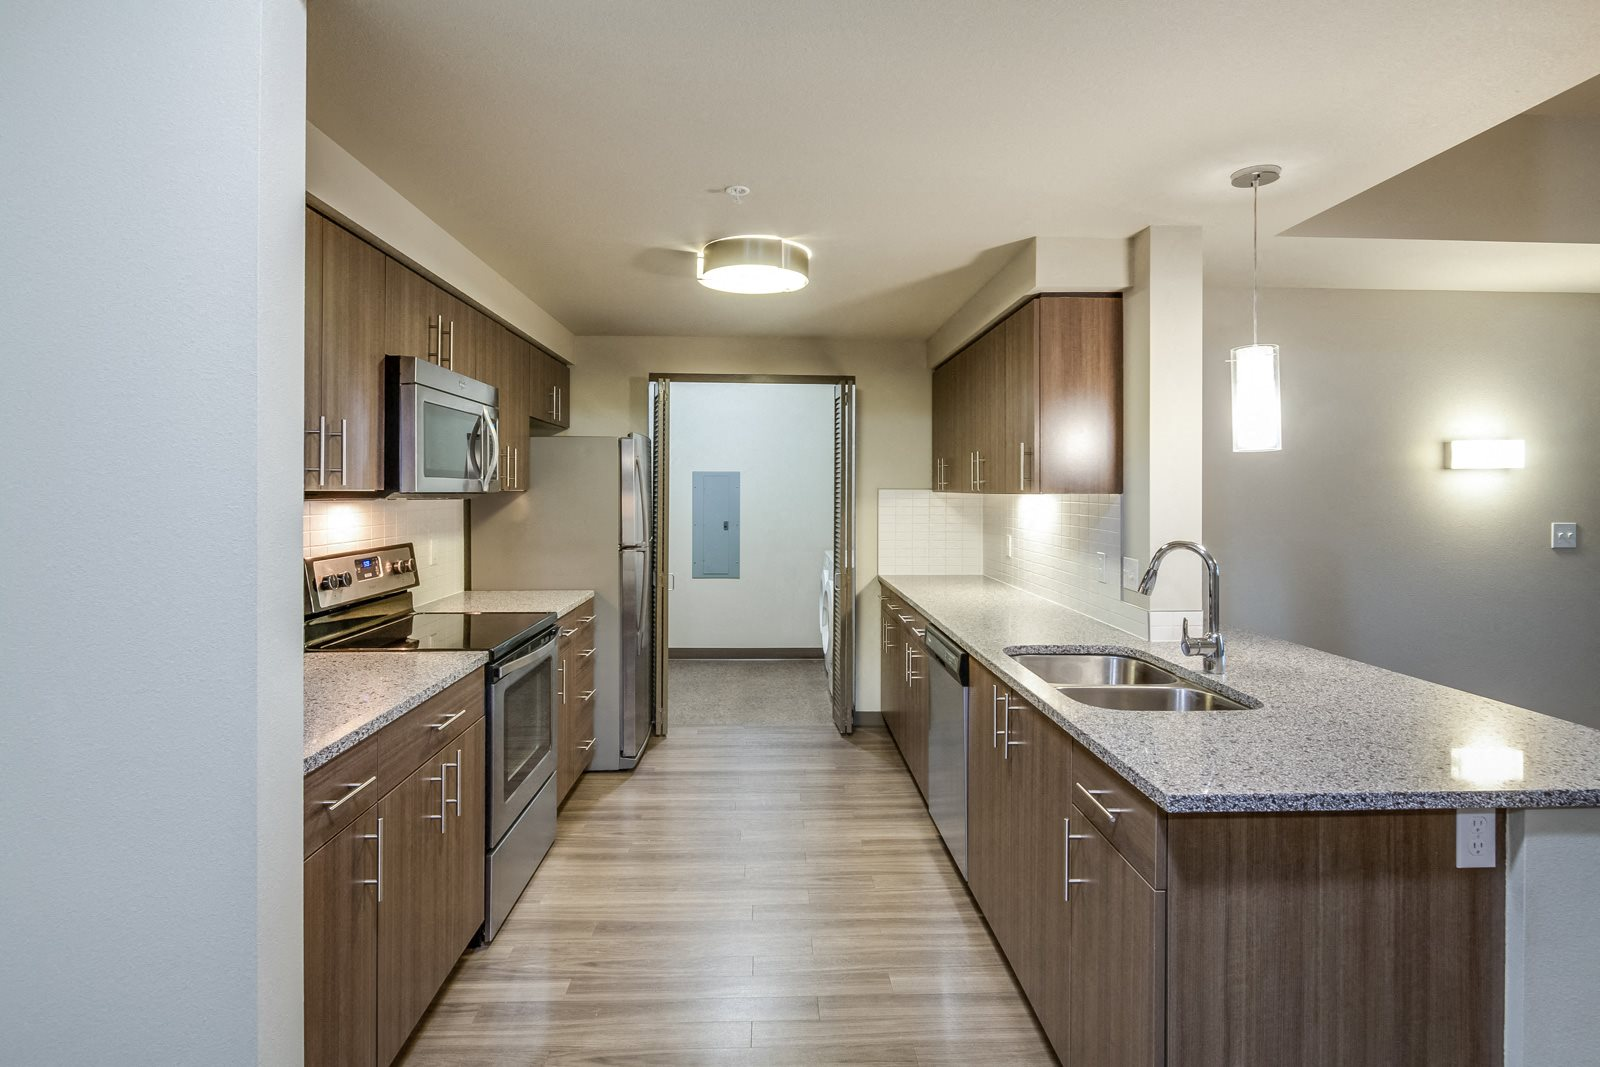 Custom Designed Interiors at Platform 14, Hillsboro, 97124